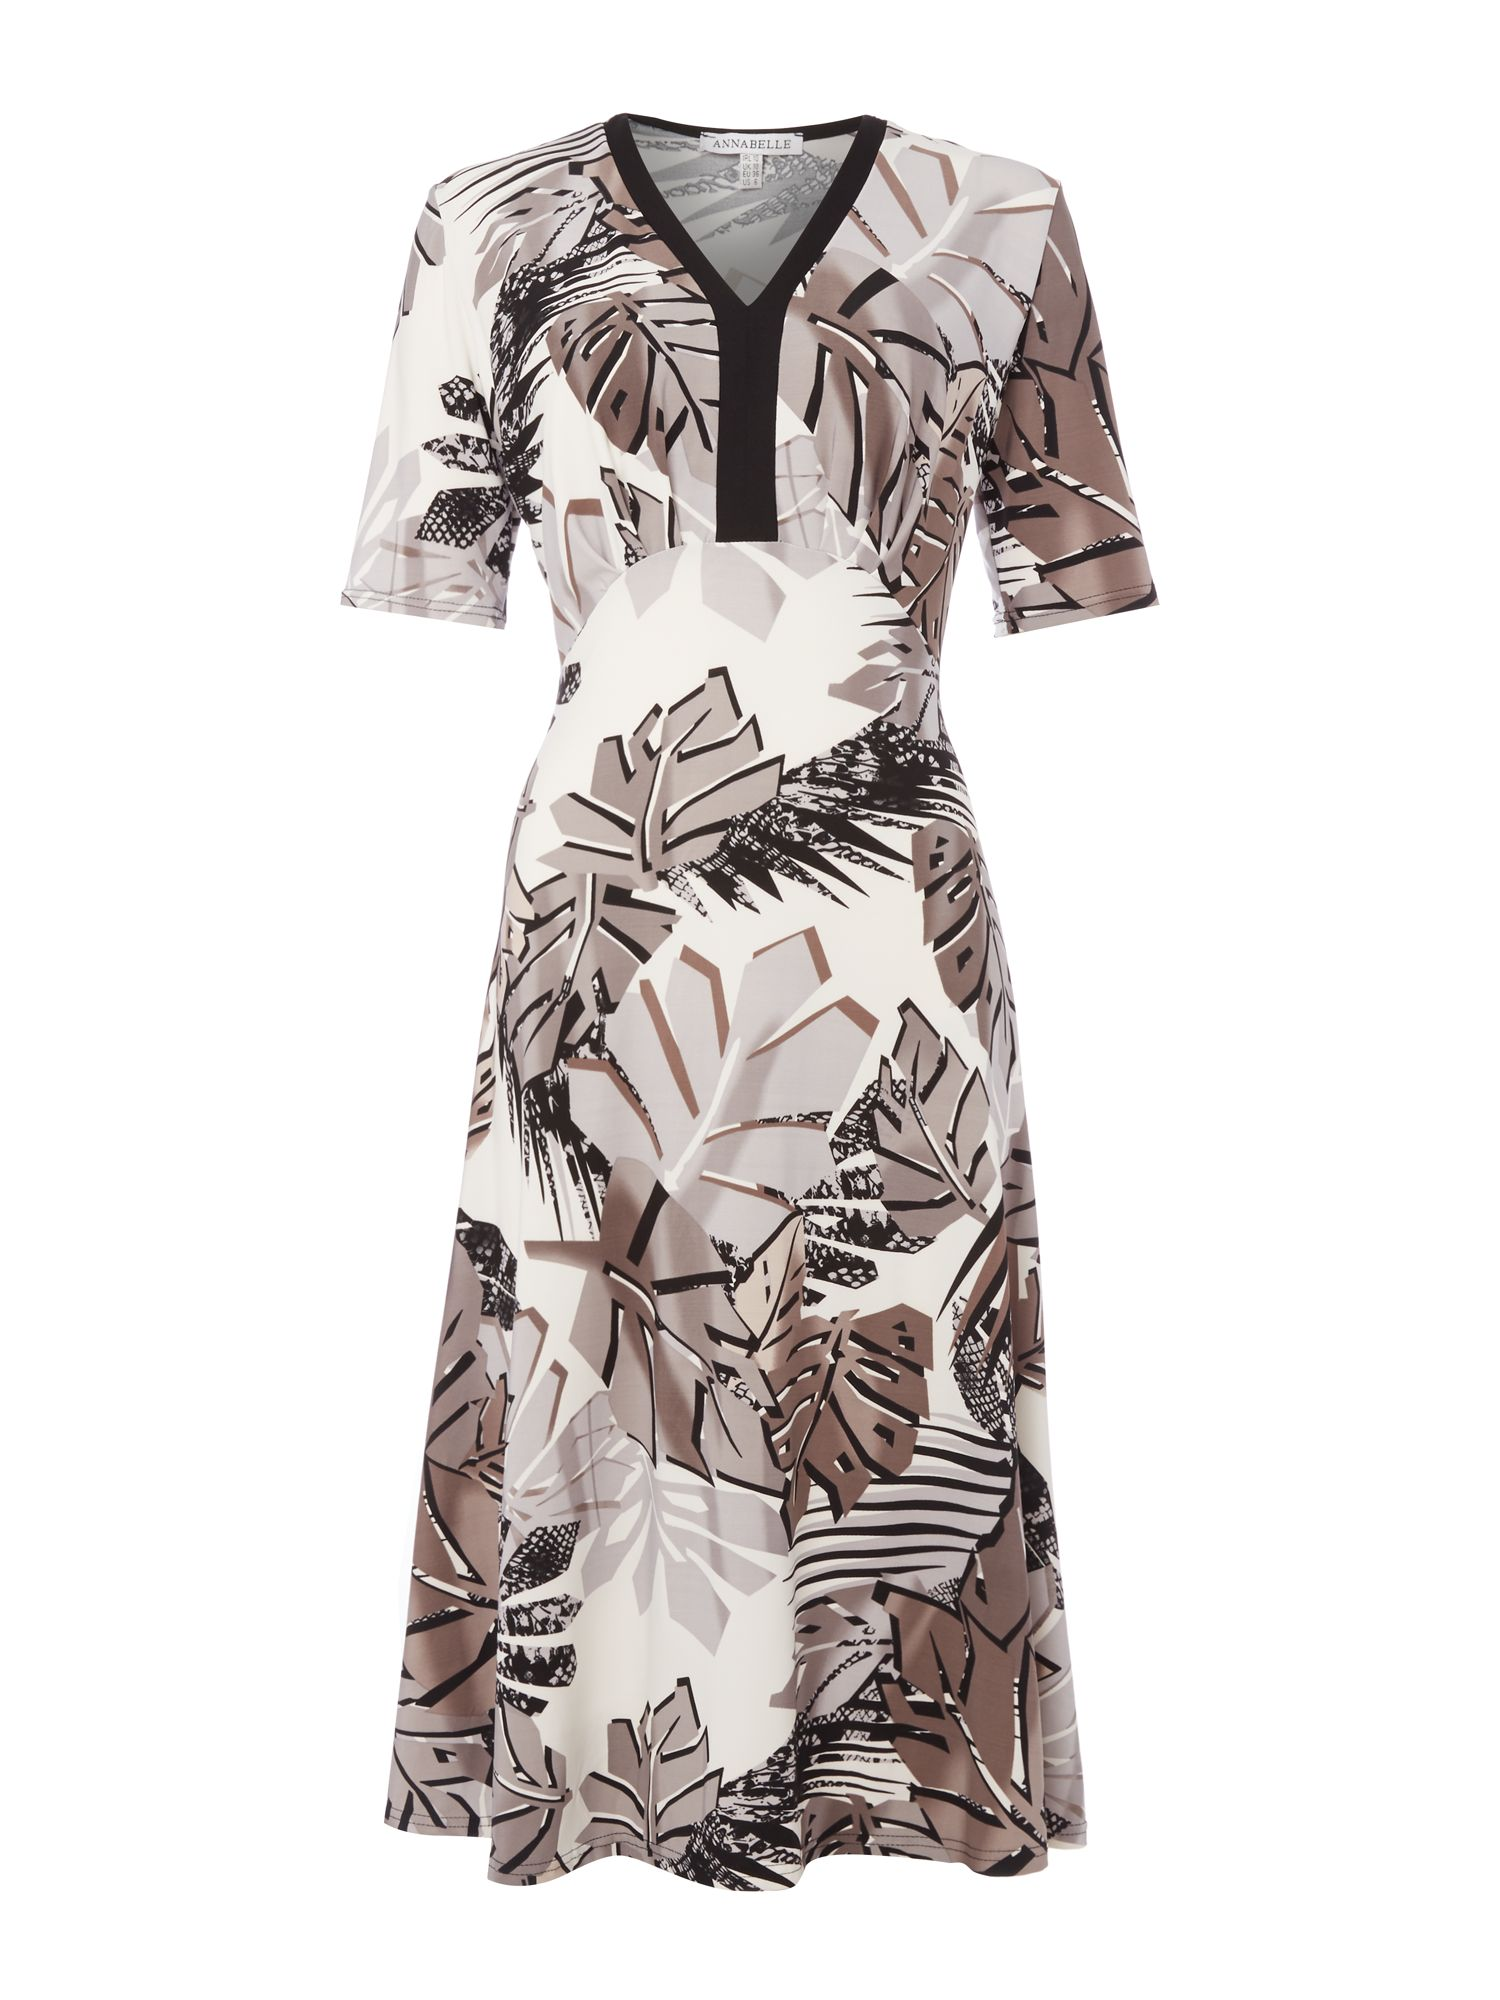 Annabelle Annabelle Printed Fit and Flare Dress, Beige